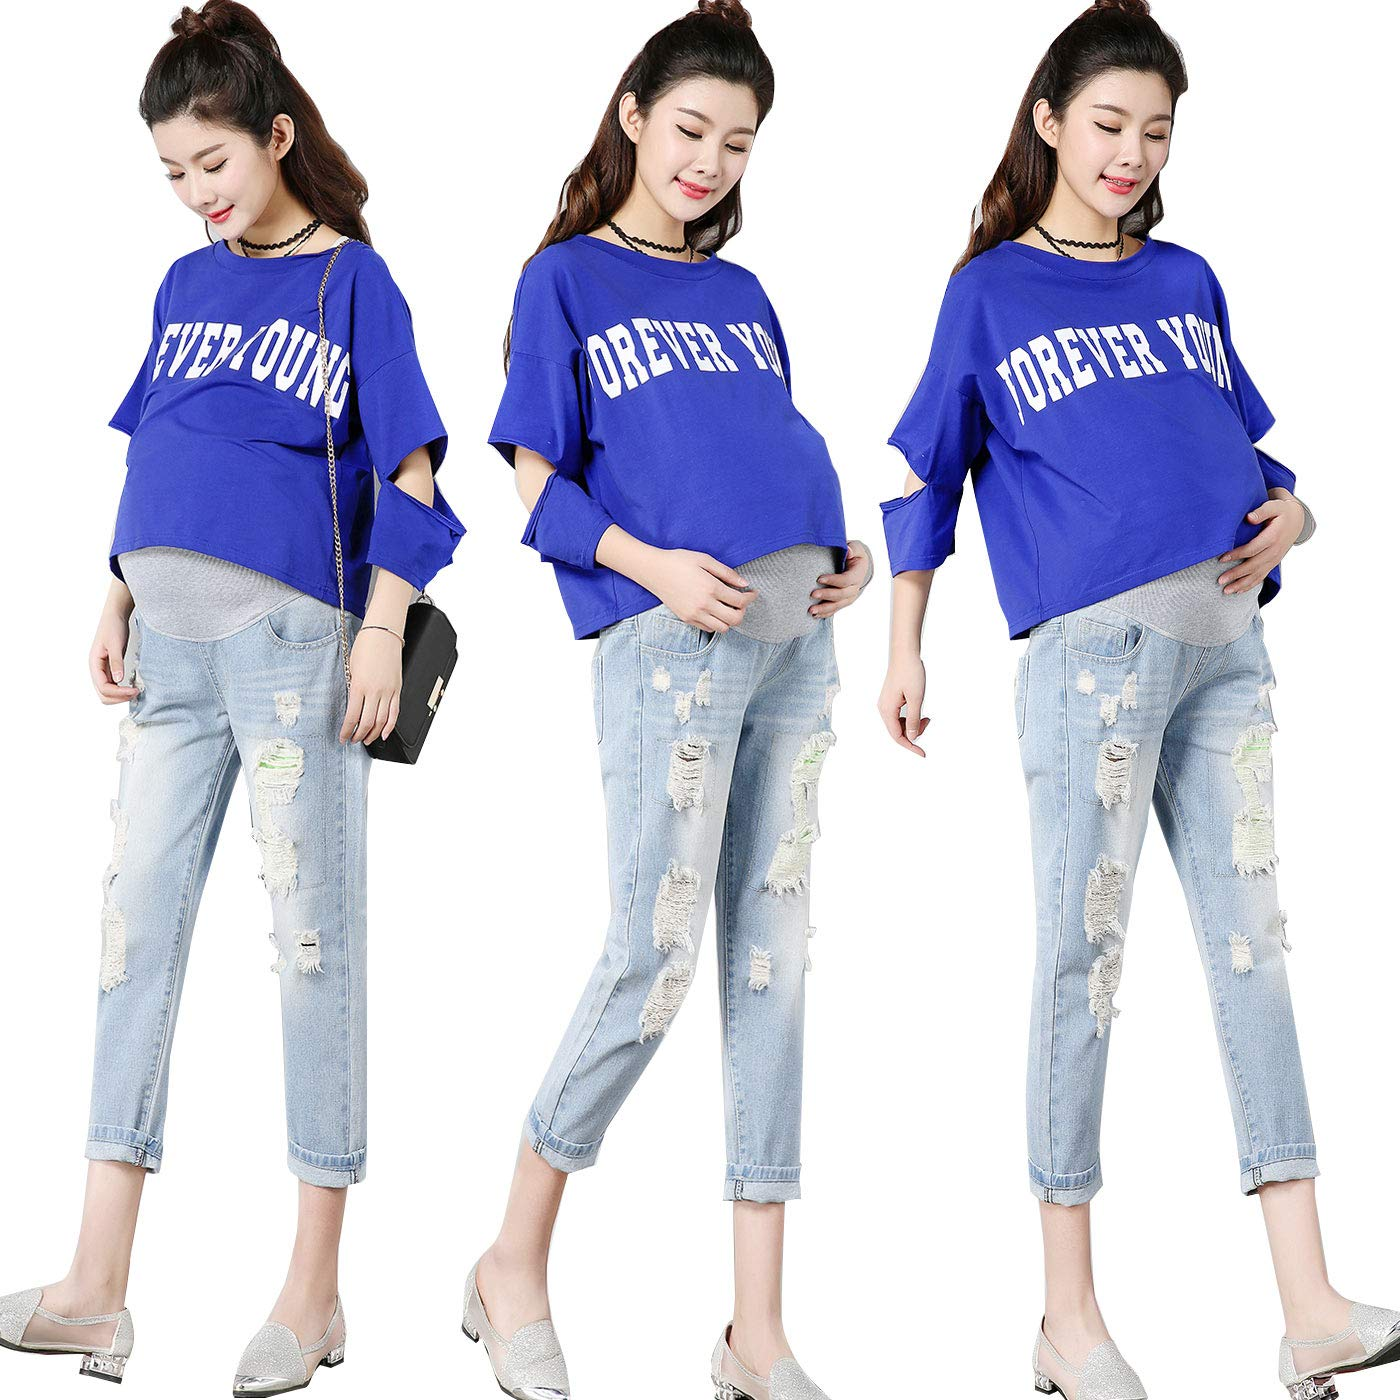 69e0ffee0fb FEOYA Skinny Jeans for Pregnant Women Butt Lifting Stretch Denim Pants  Leggings at Amazon Women s Clothing store